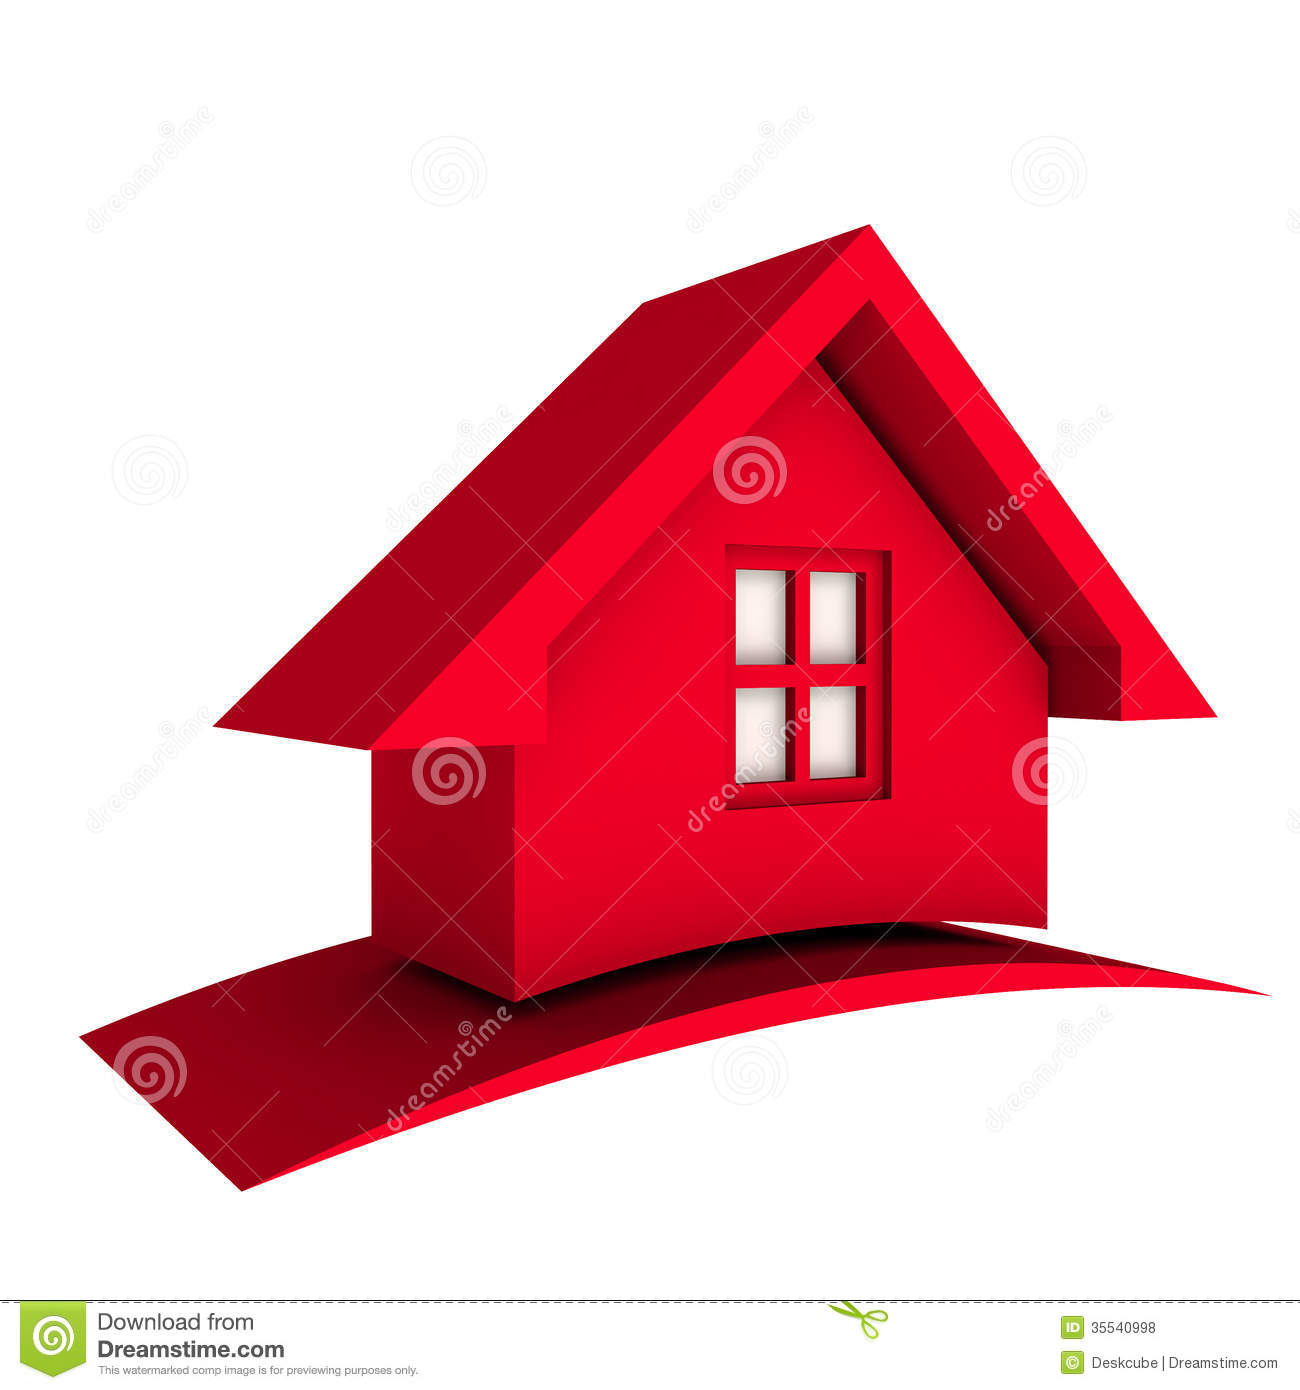 Rotes haus clipart freeuse Rotes haus clipart - ClipartFest freeuse